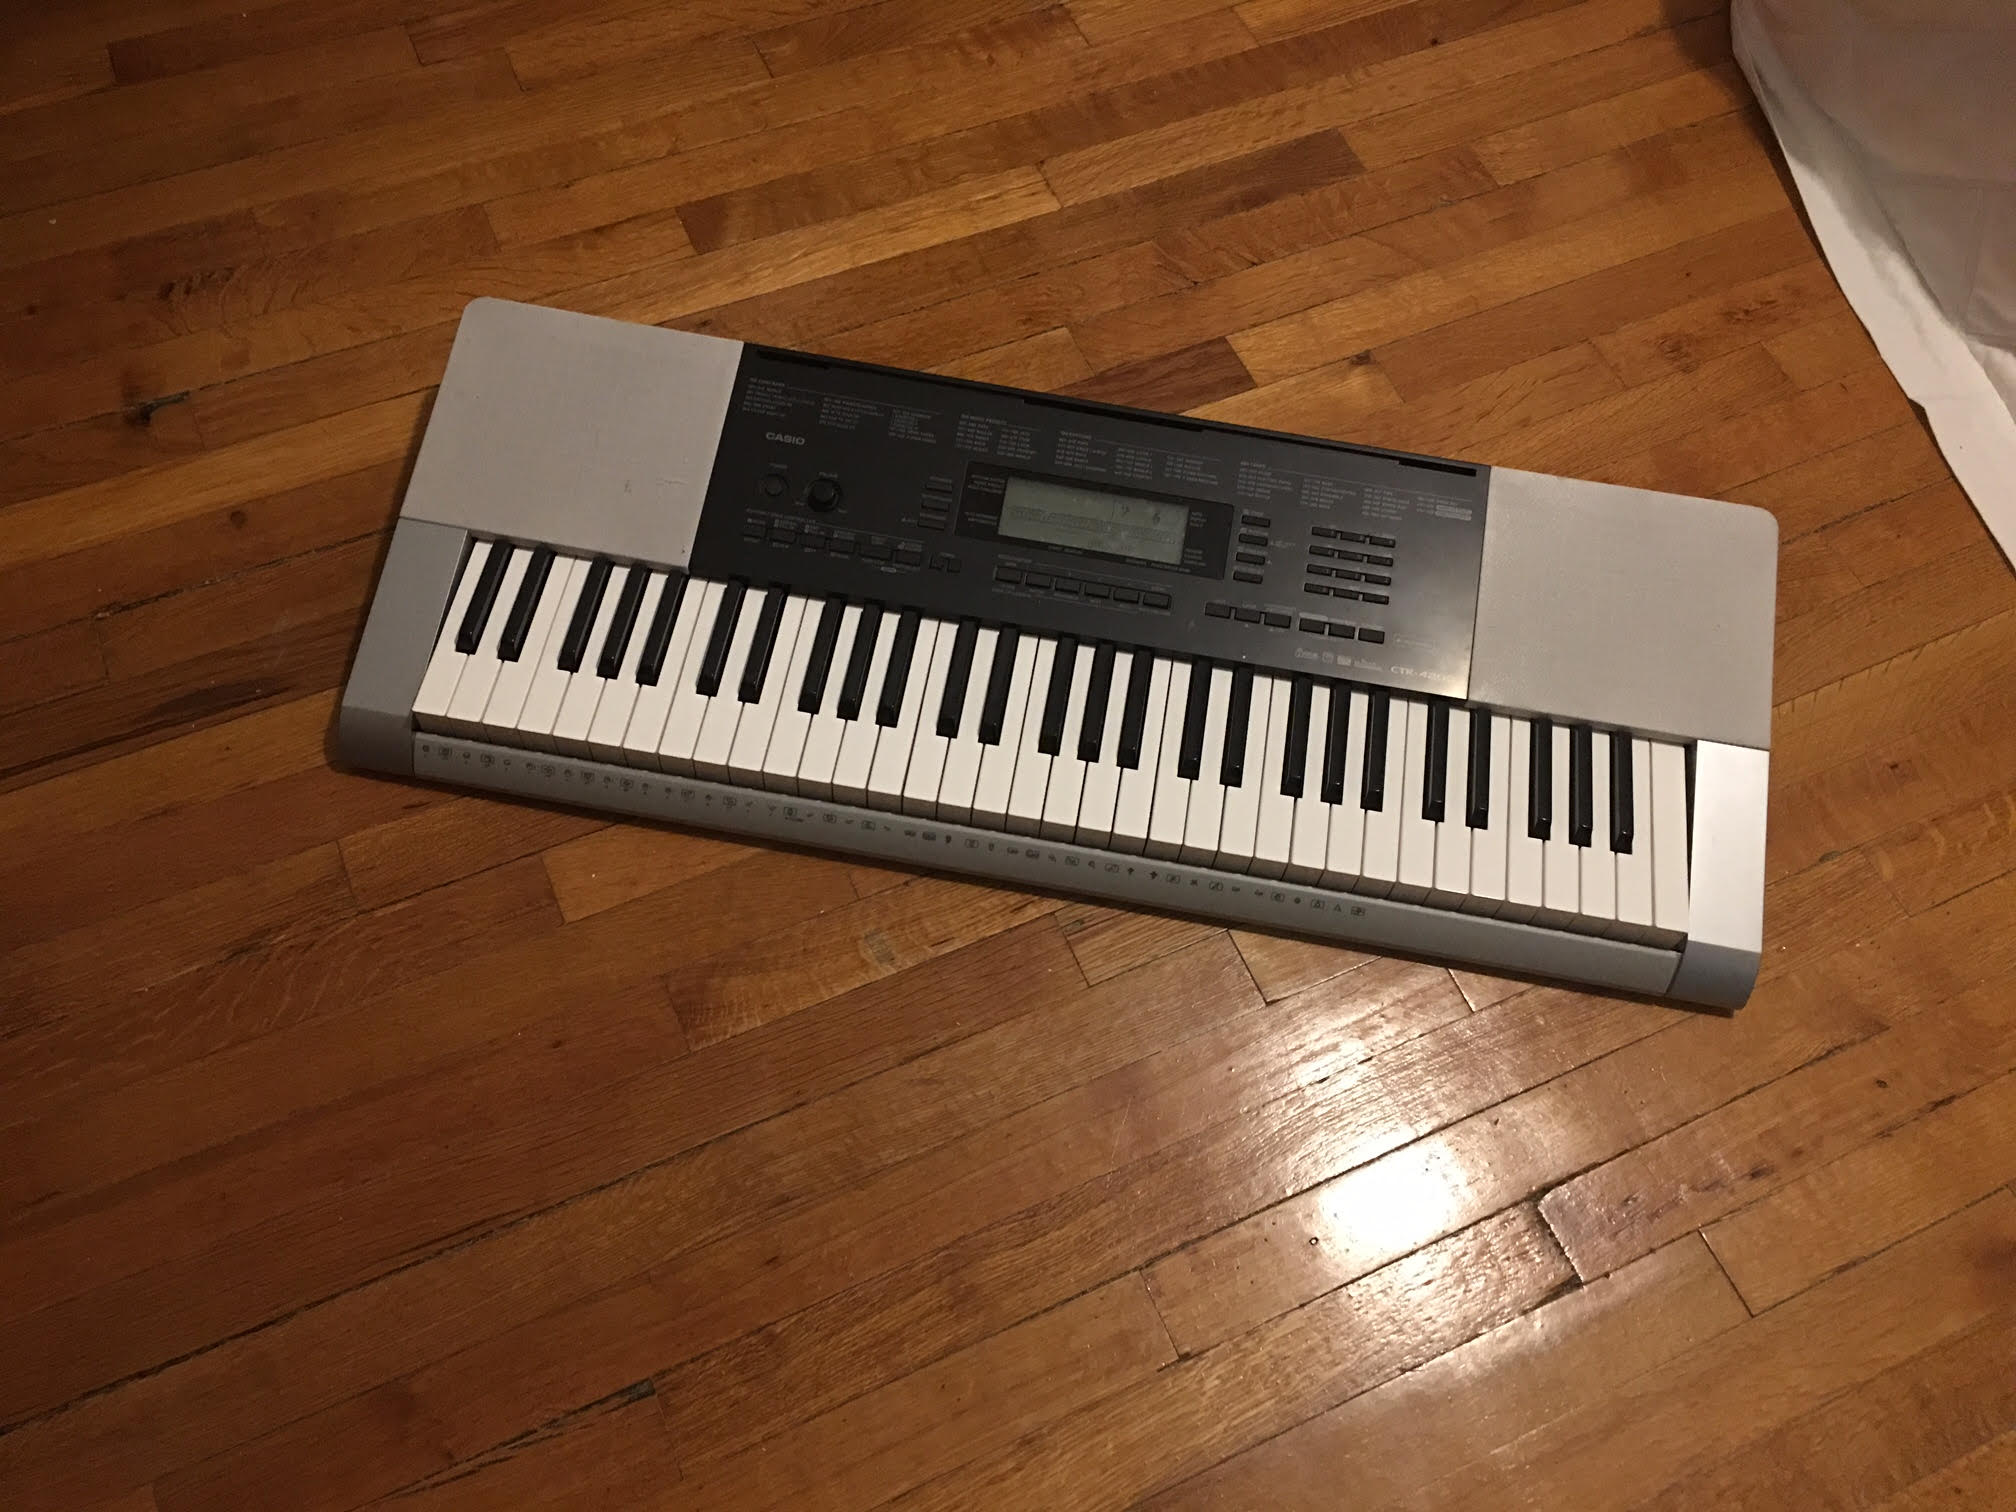 Alex Frank wants to put his electronic keyboard in MakeSpace storage.